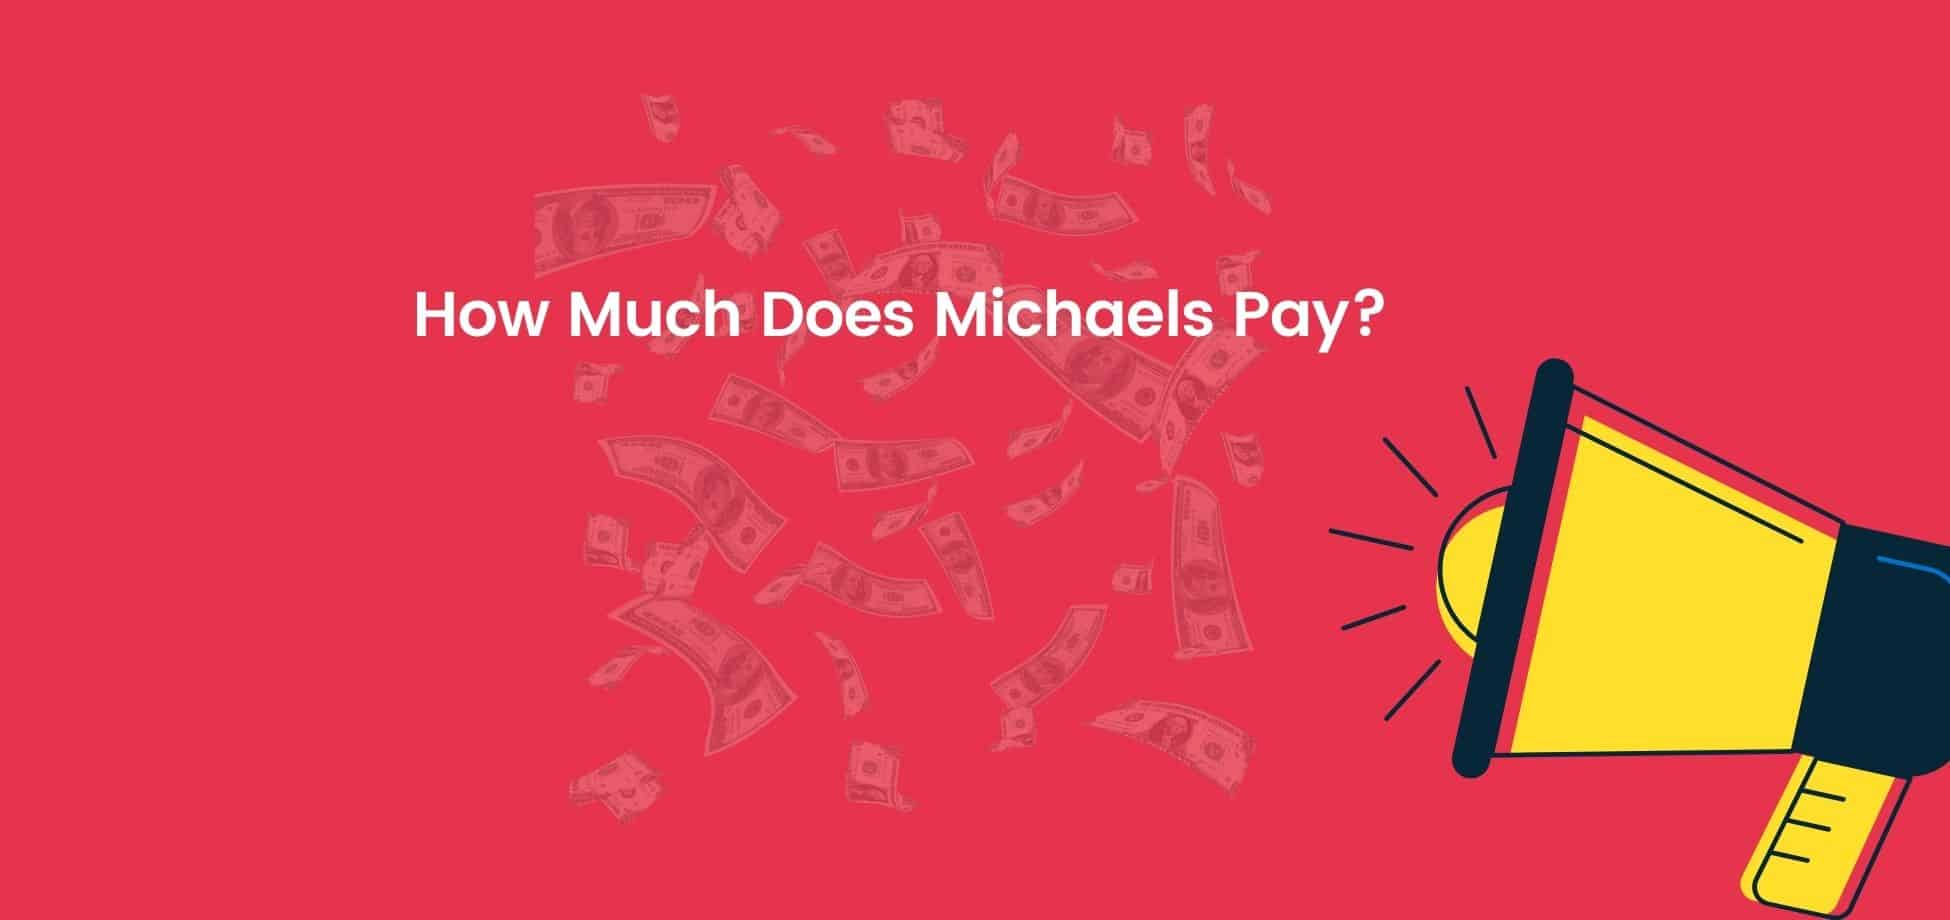 Michaels hourly pay and salaries are just about average for the retail industry.